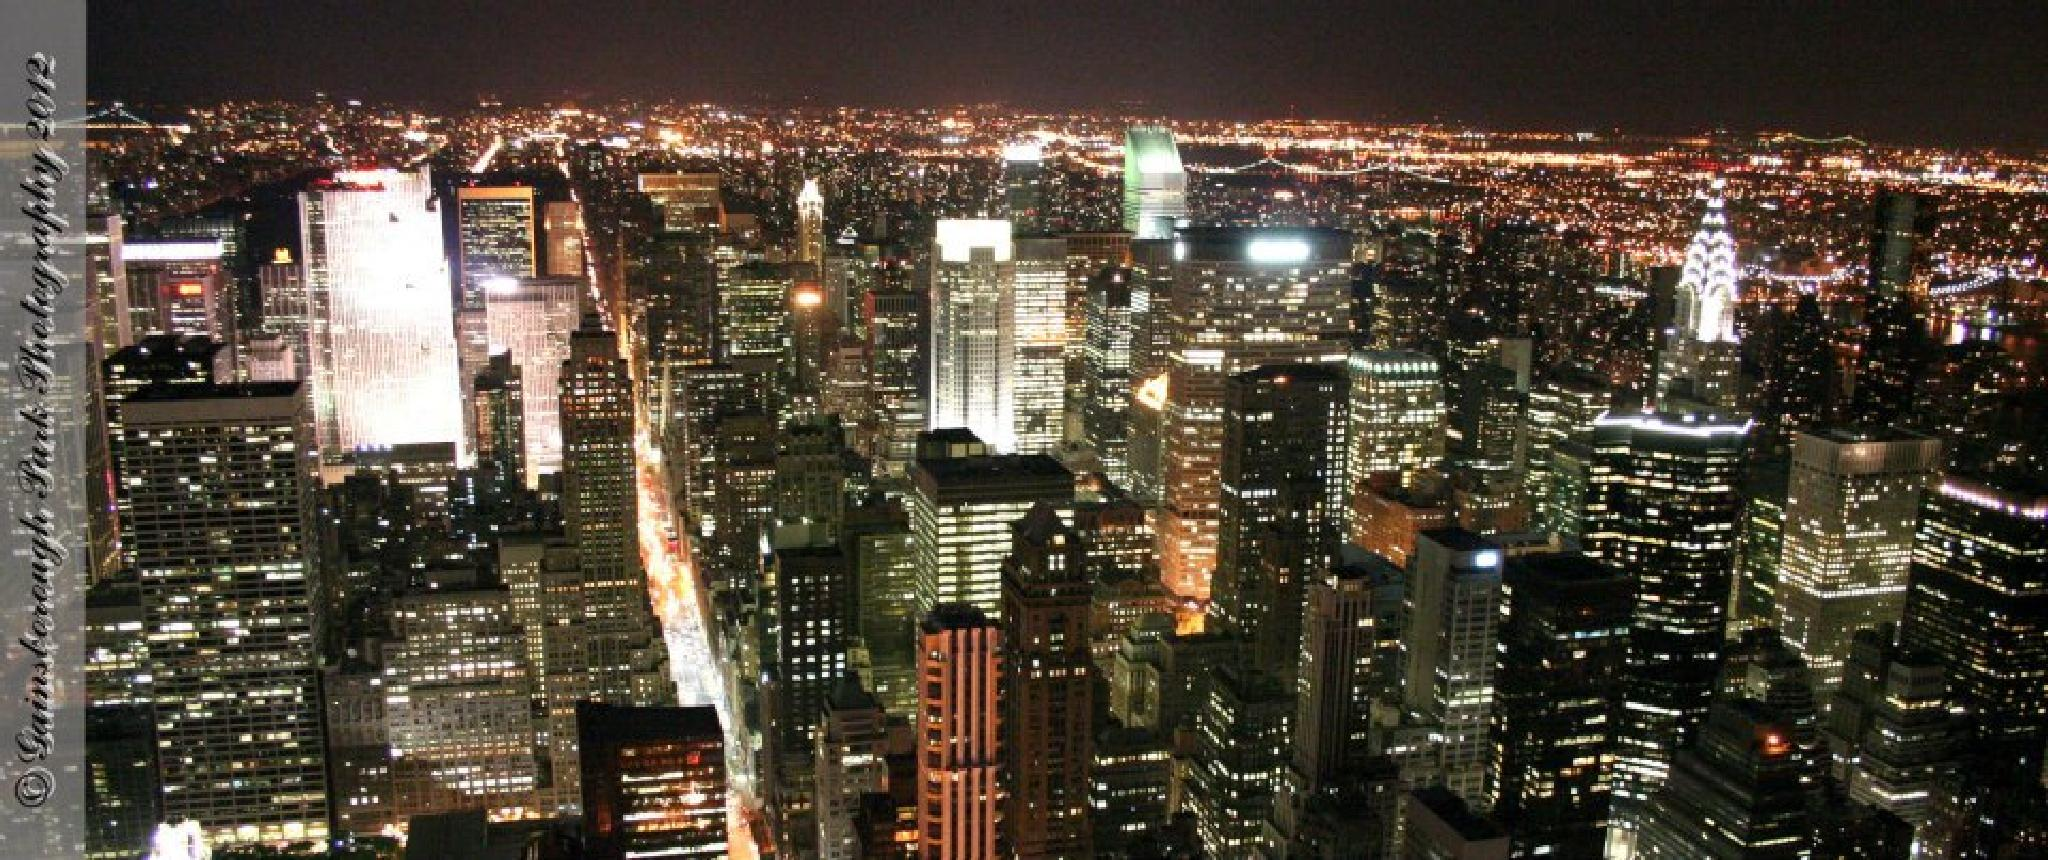 Manhattan at night by Gainsborough Park Photography